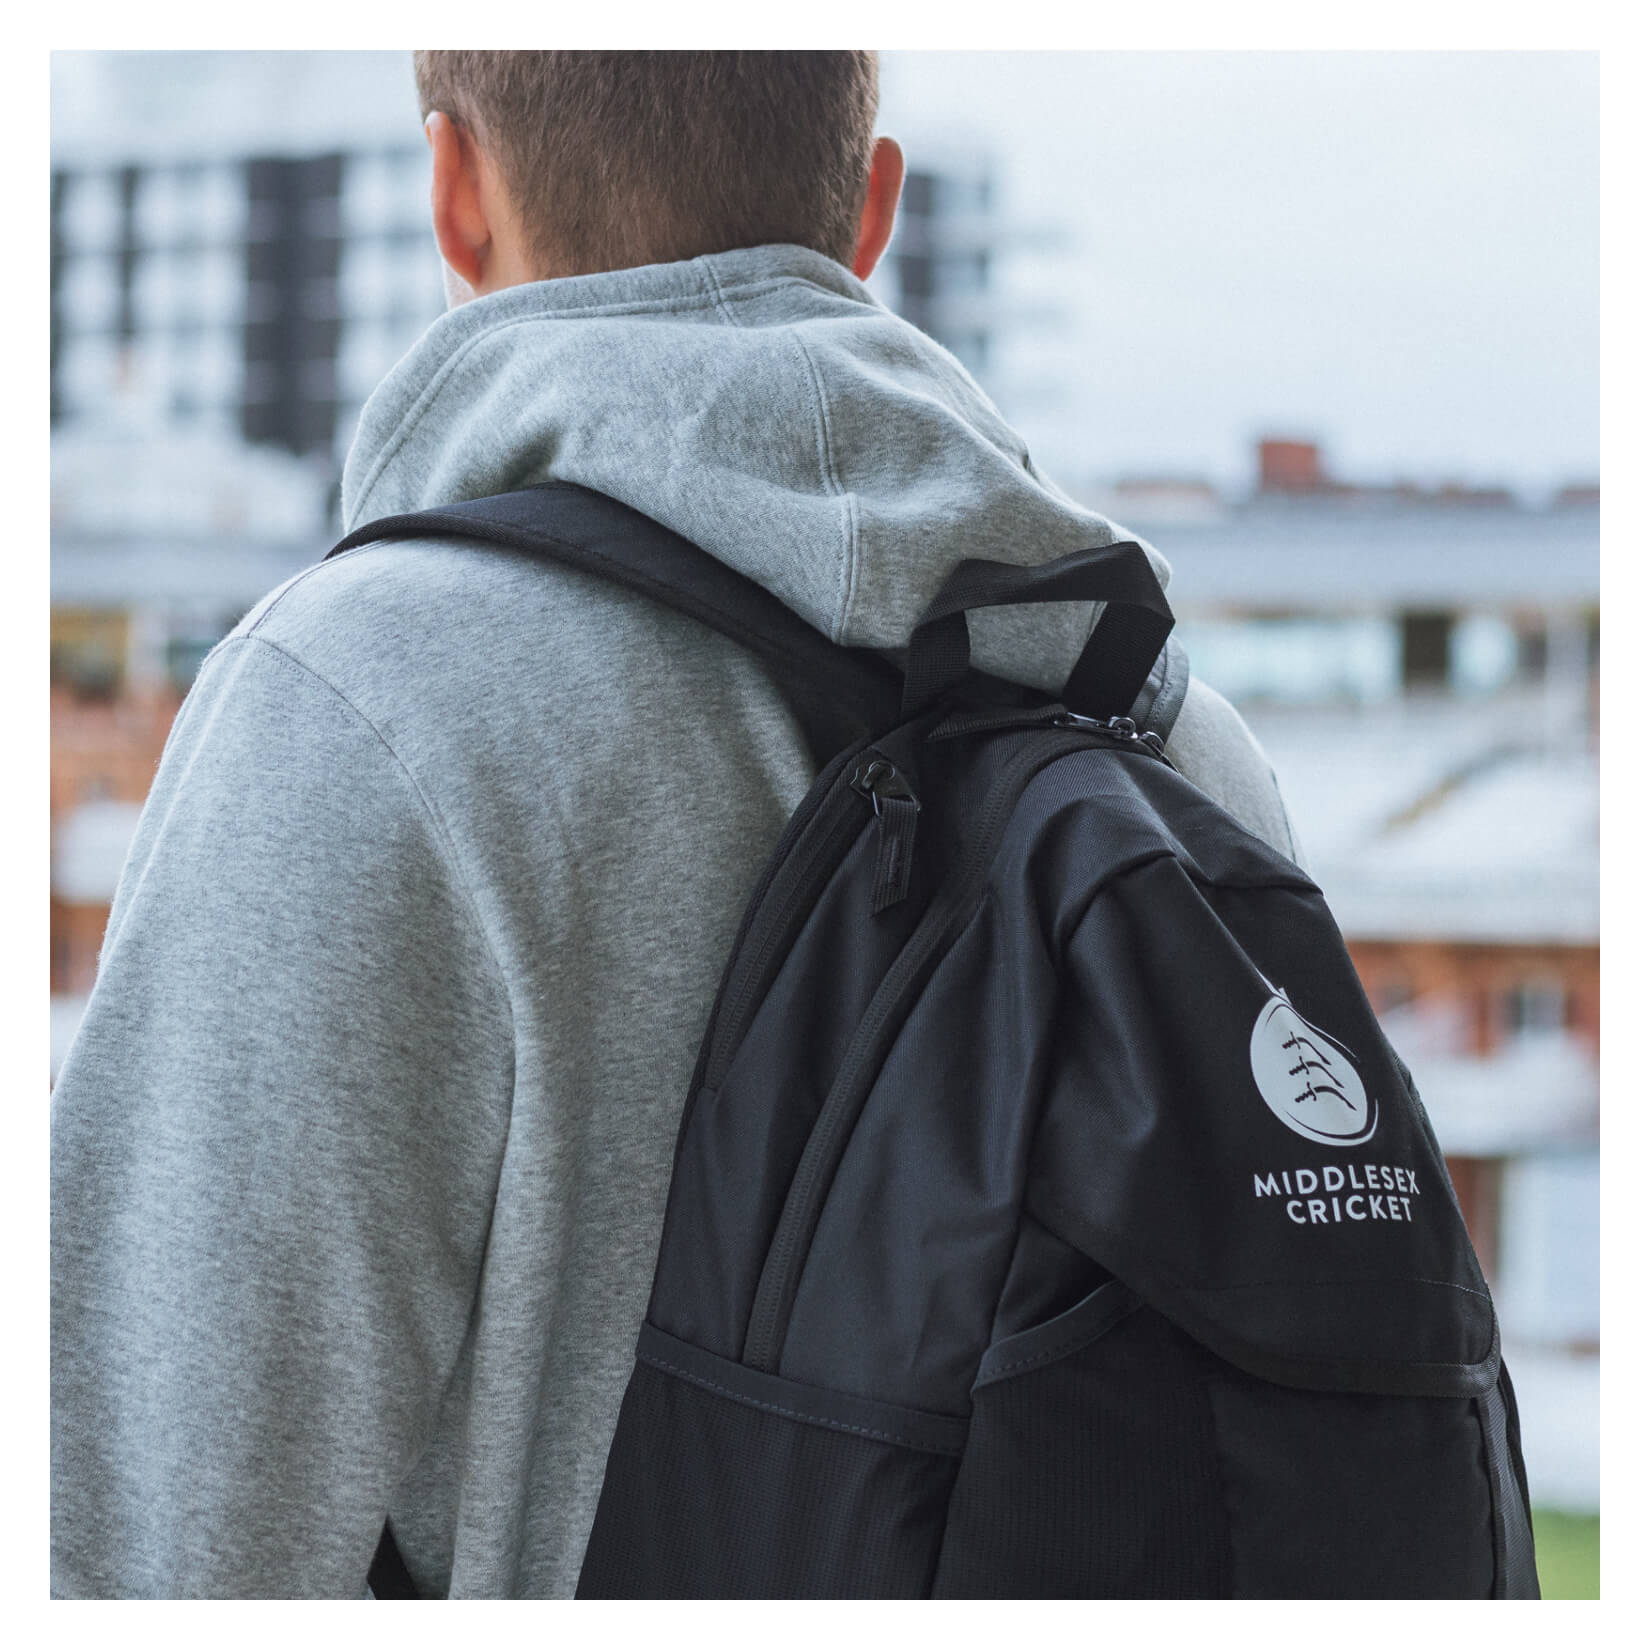 MDX-Kitlocker Nike Middlesex Cricket Backpack